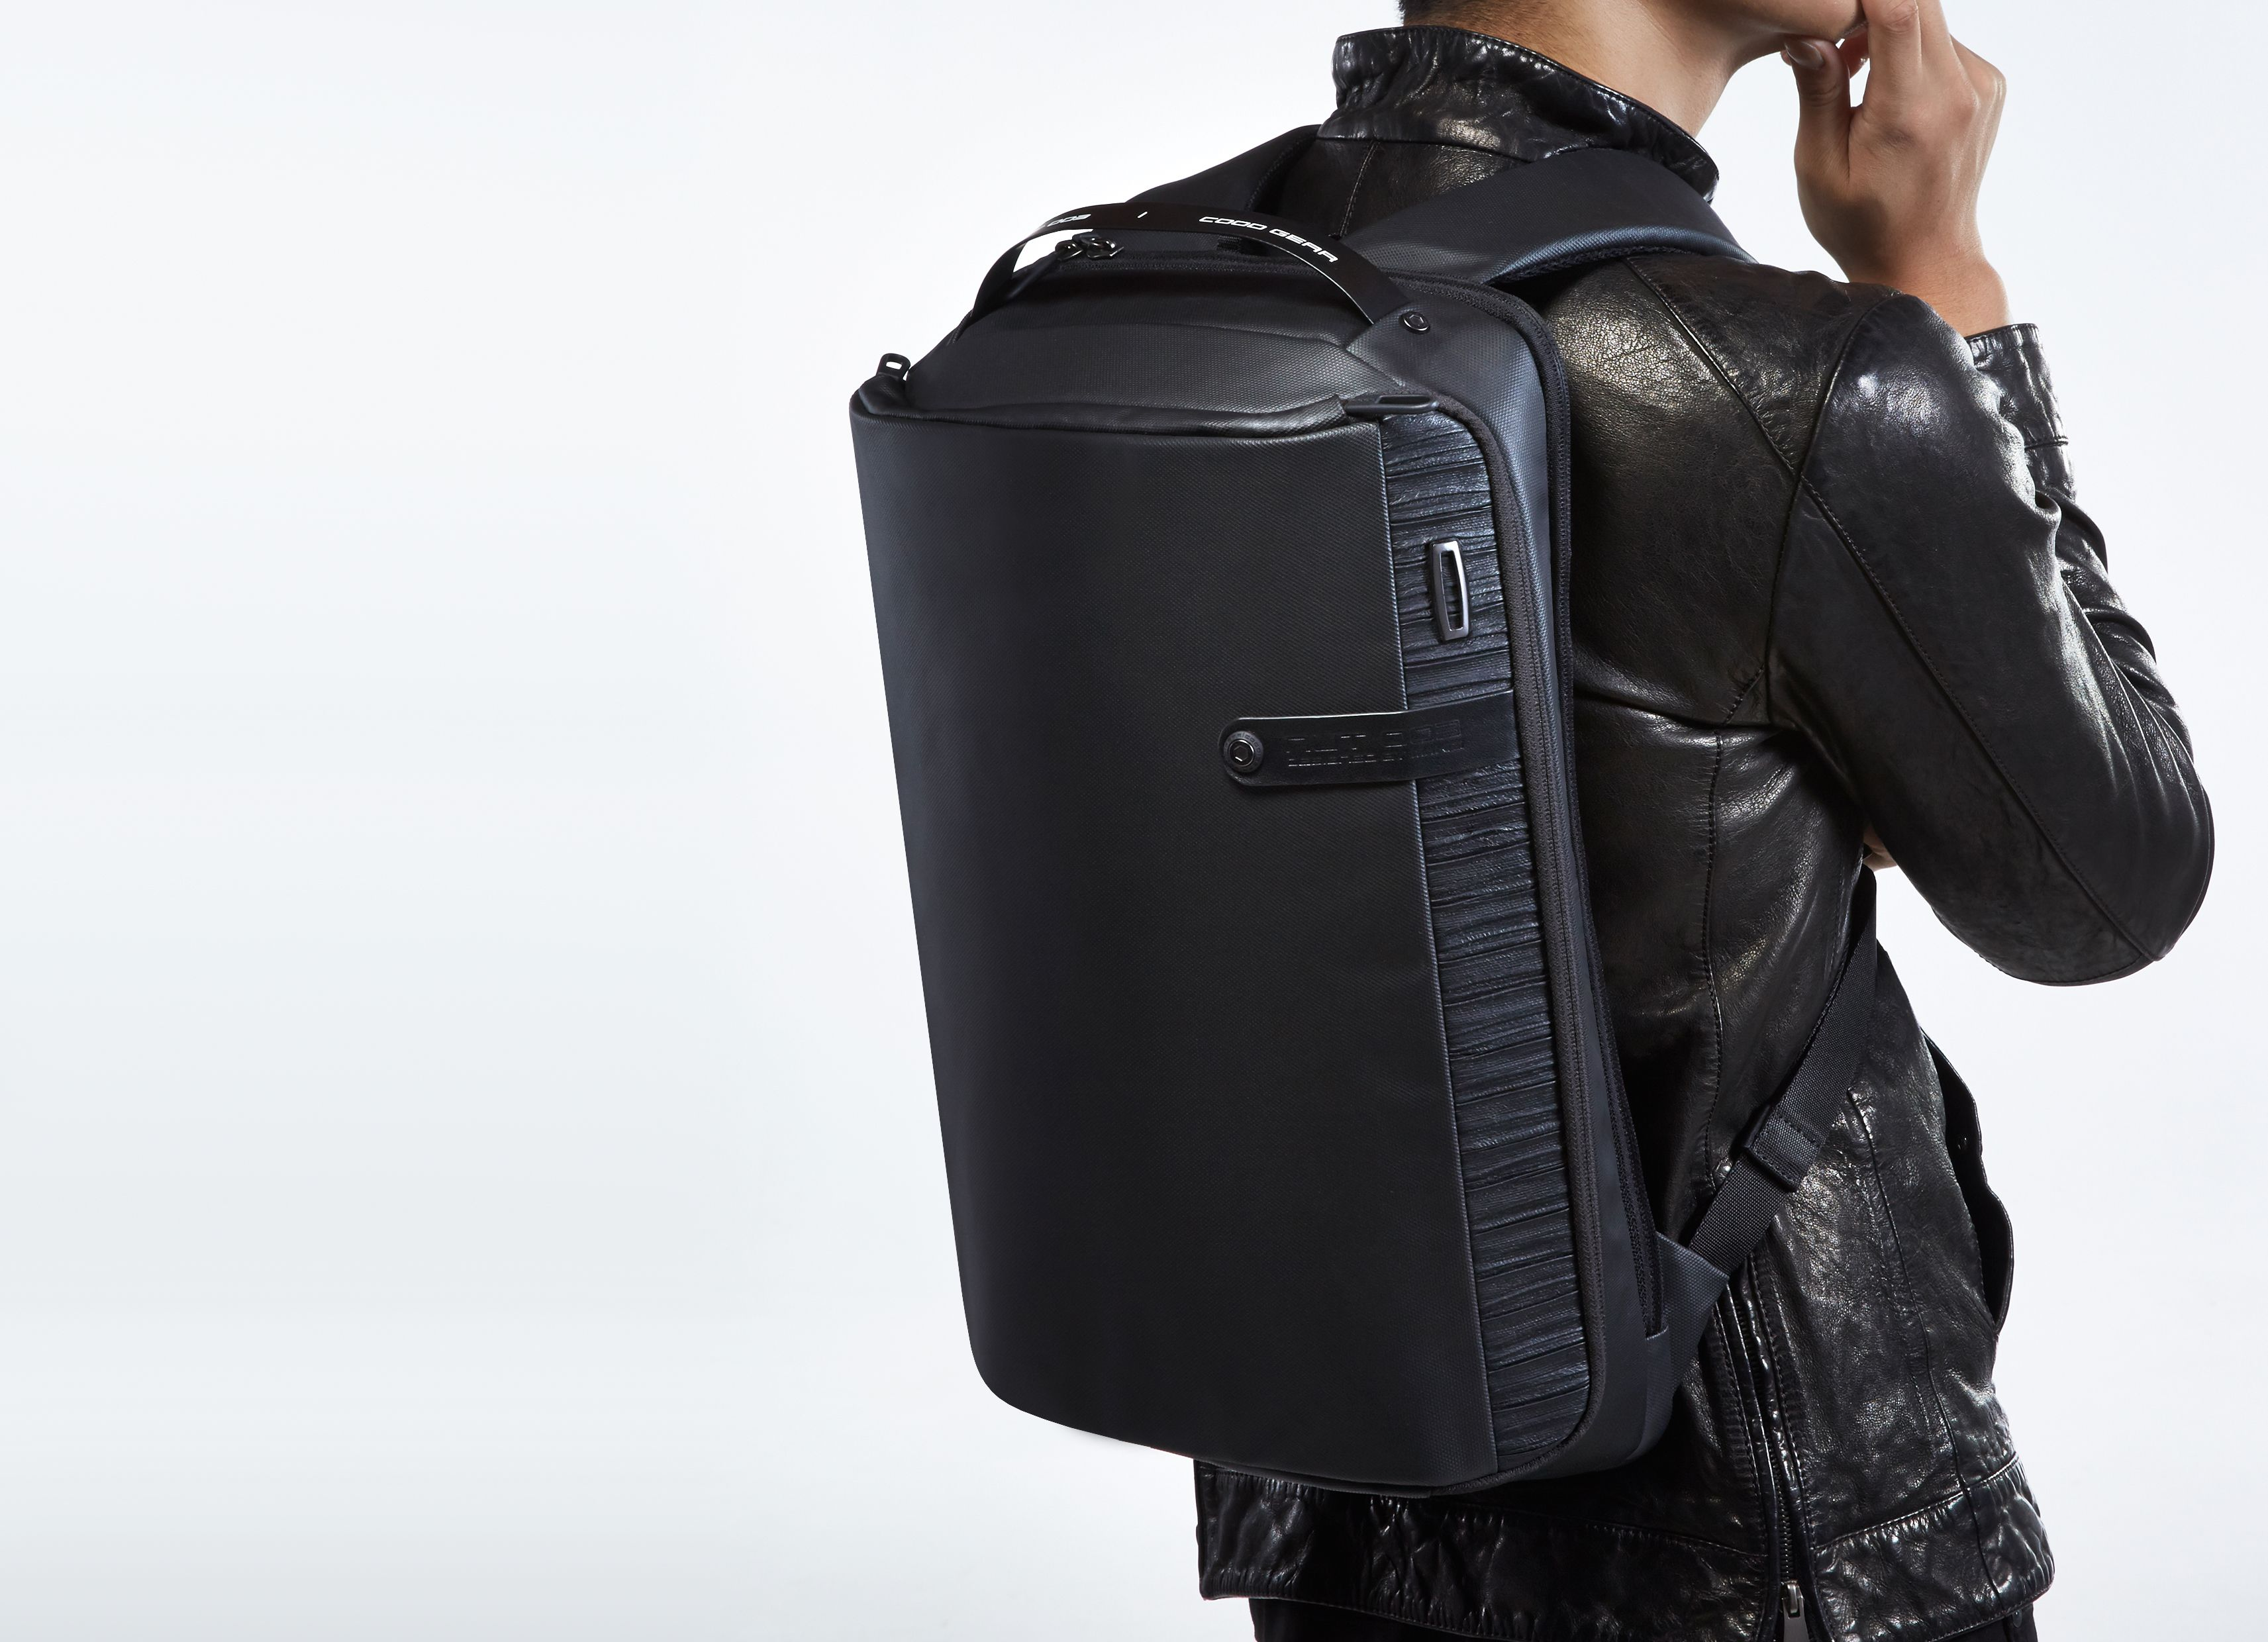 d3f2c6fdf7a Leather Backpack, Backpack Bags, Leather Bags, Work Bags, Laptop Bag, Travel